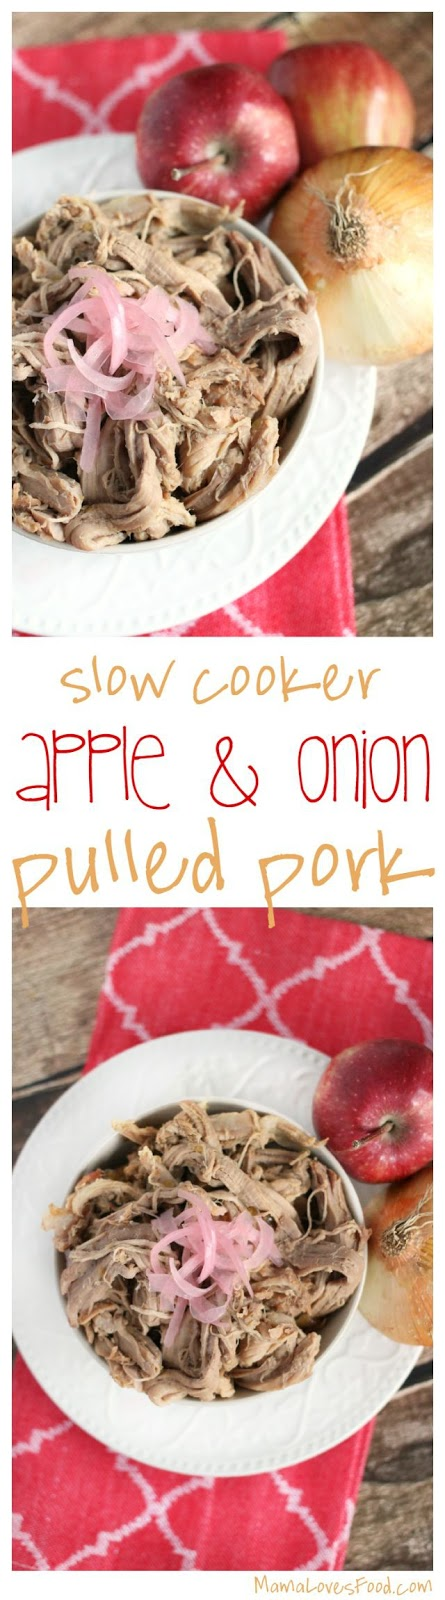 Slow Cooker Apple and Onion Pulled Pork Recipe